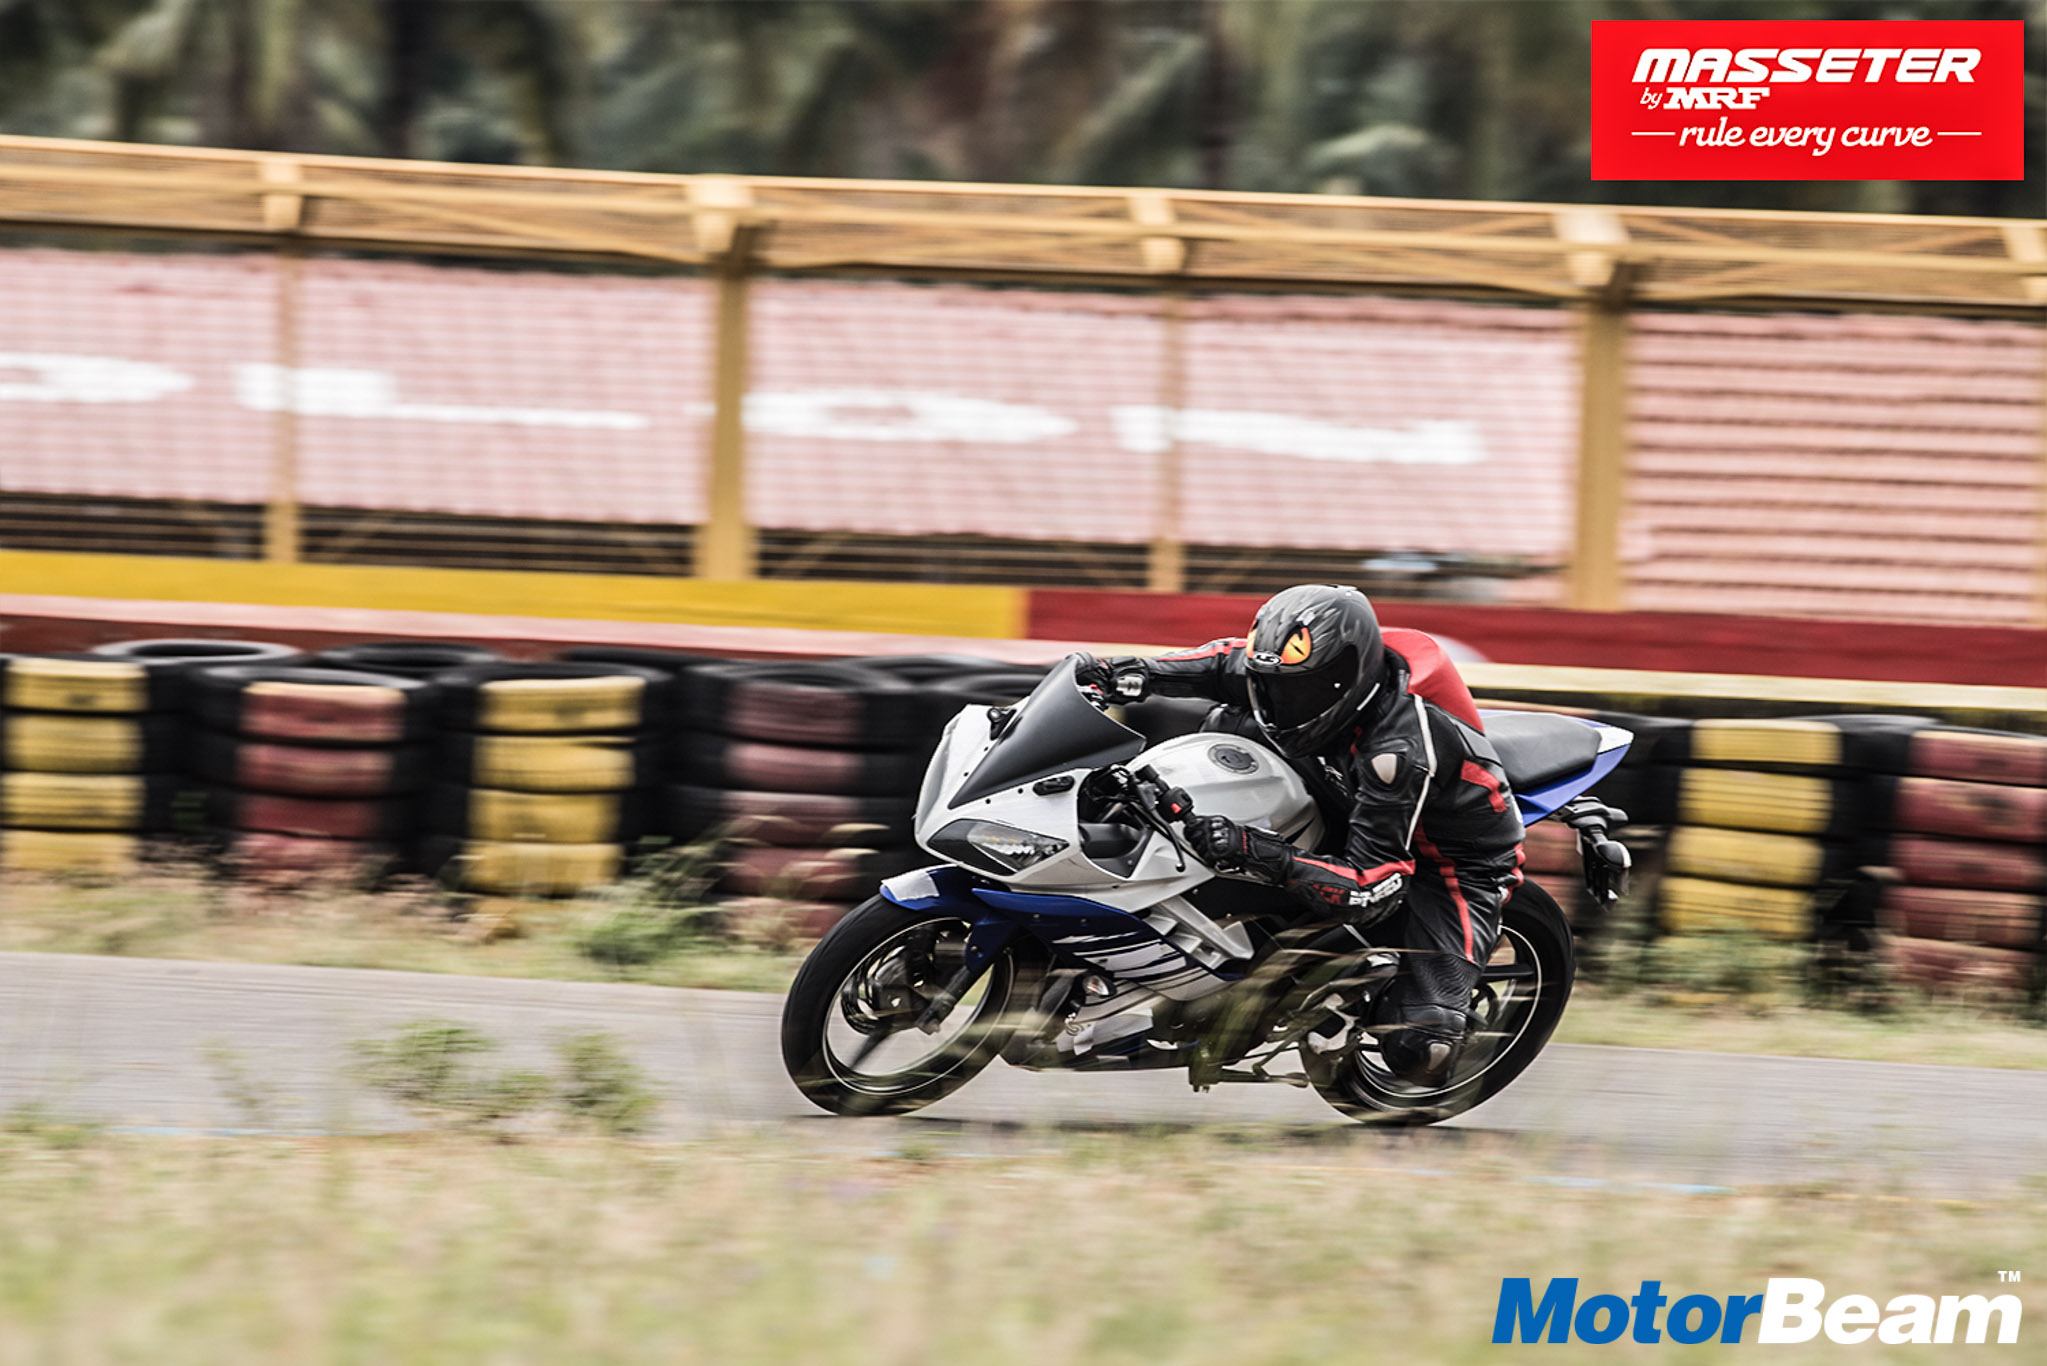 Mrf Masseter Tyres Review